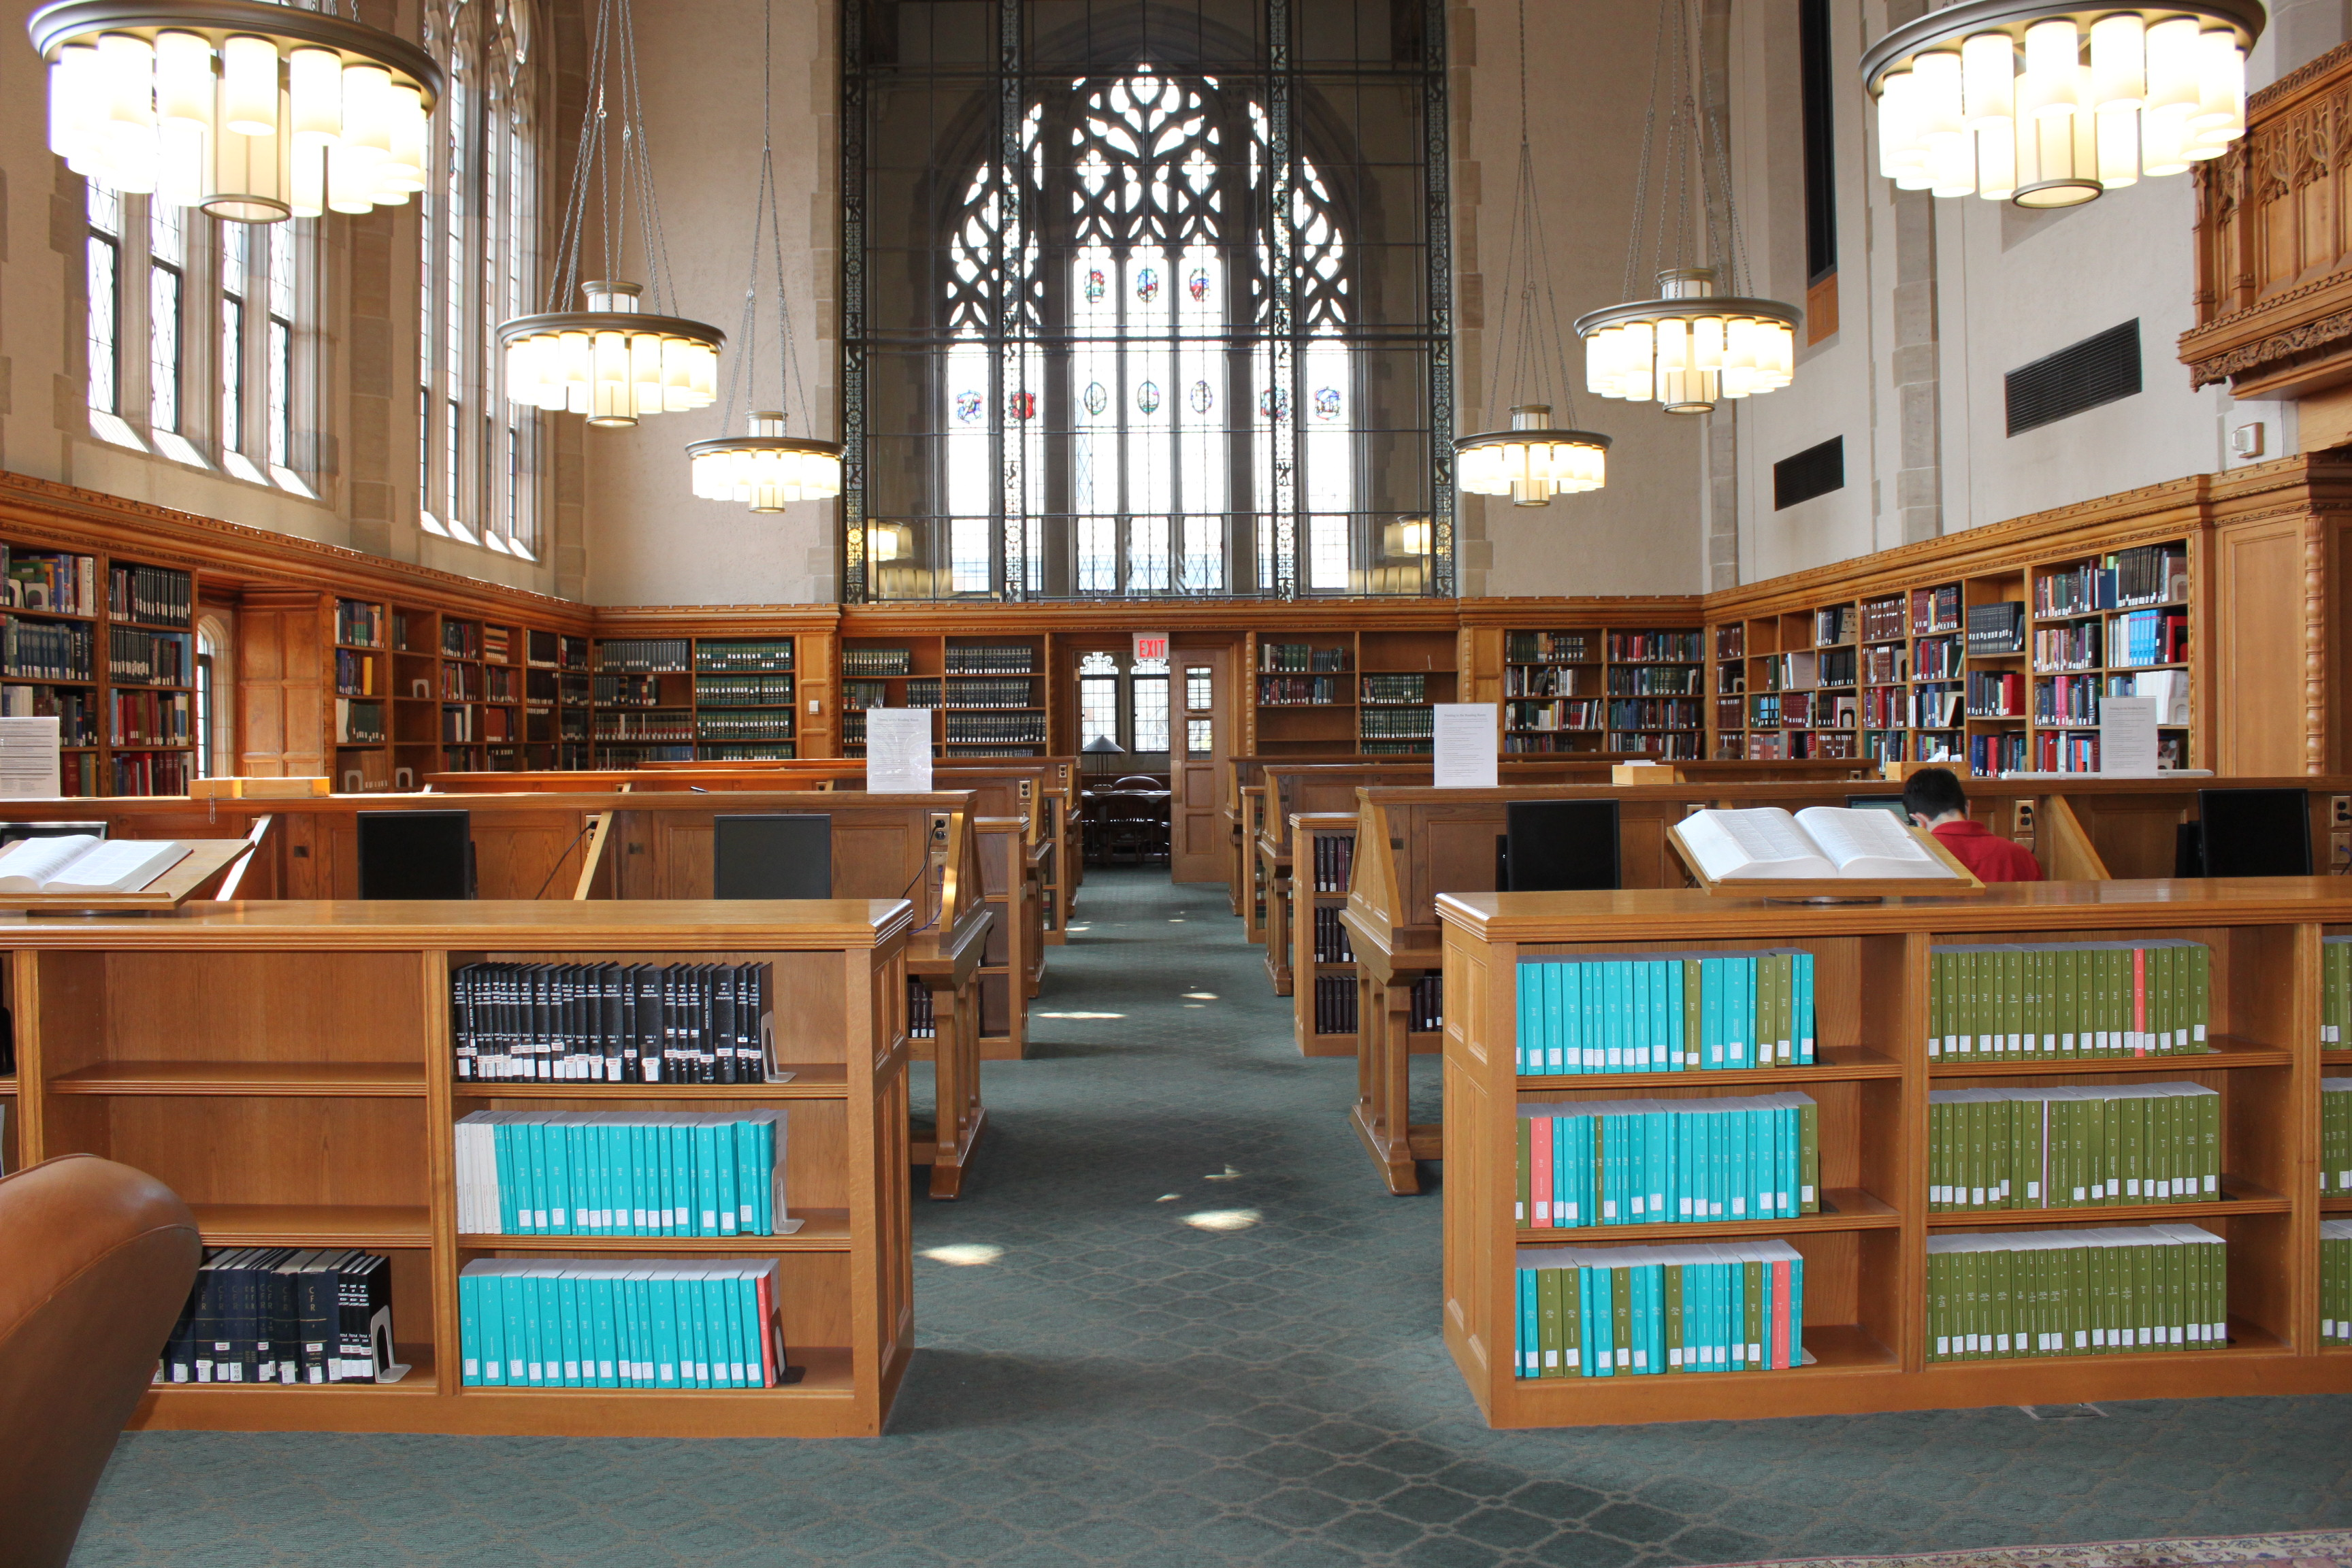 A photo of the main reading room at the Lillian Goldman Law Library.